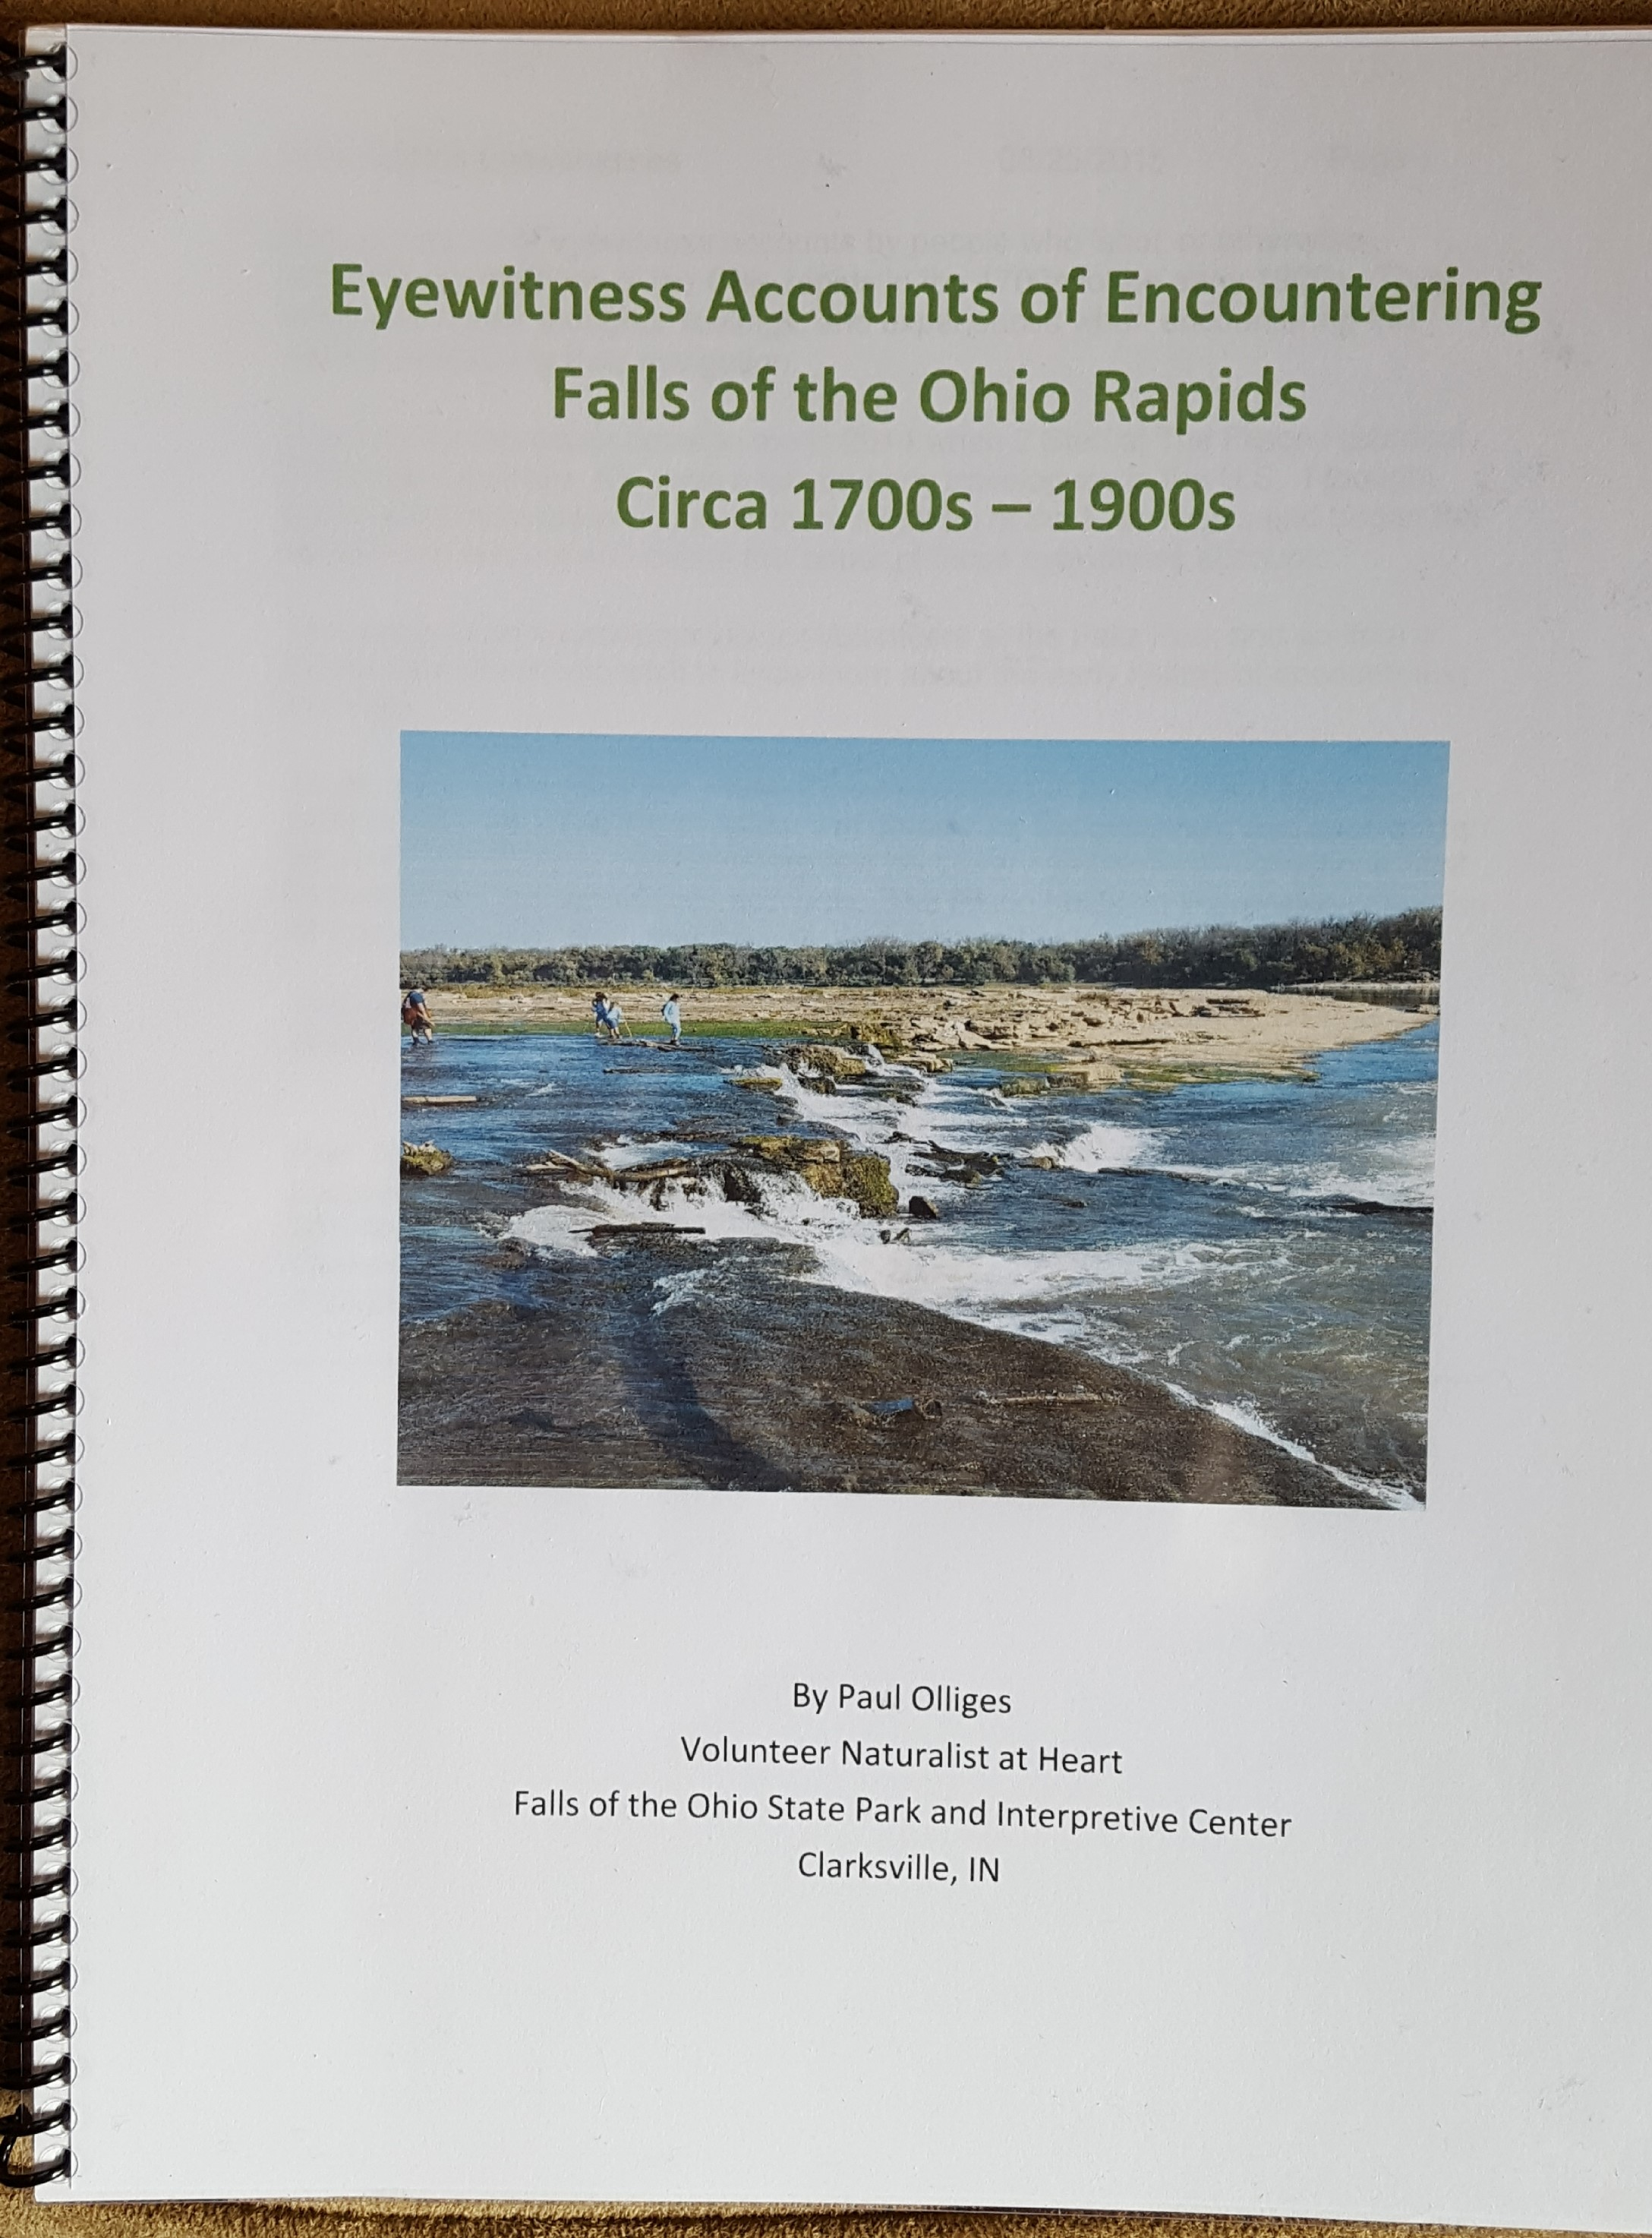 Eyewitness Accounts of Encountering Falls of the Ohio Rapids